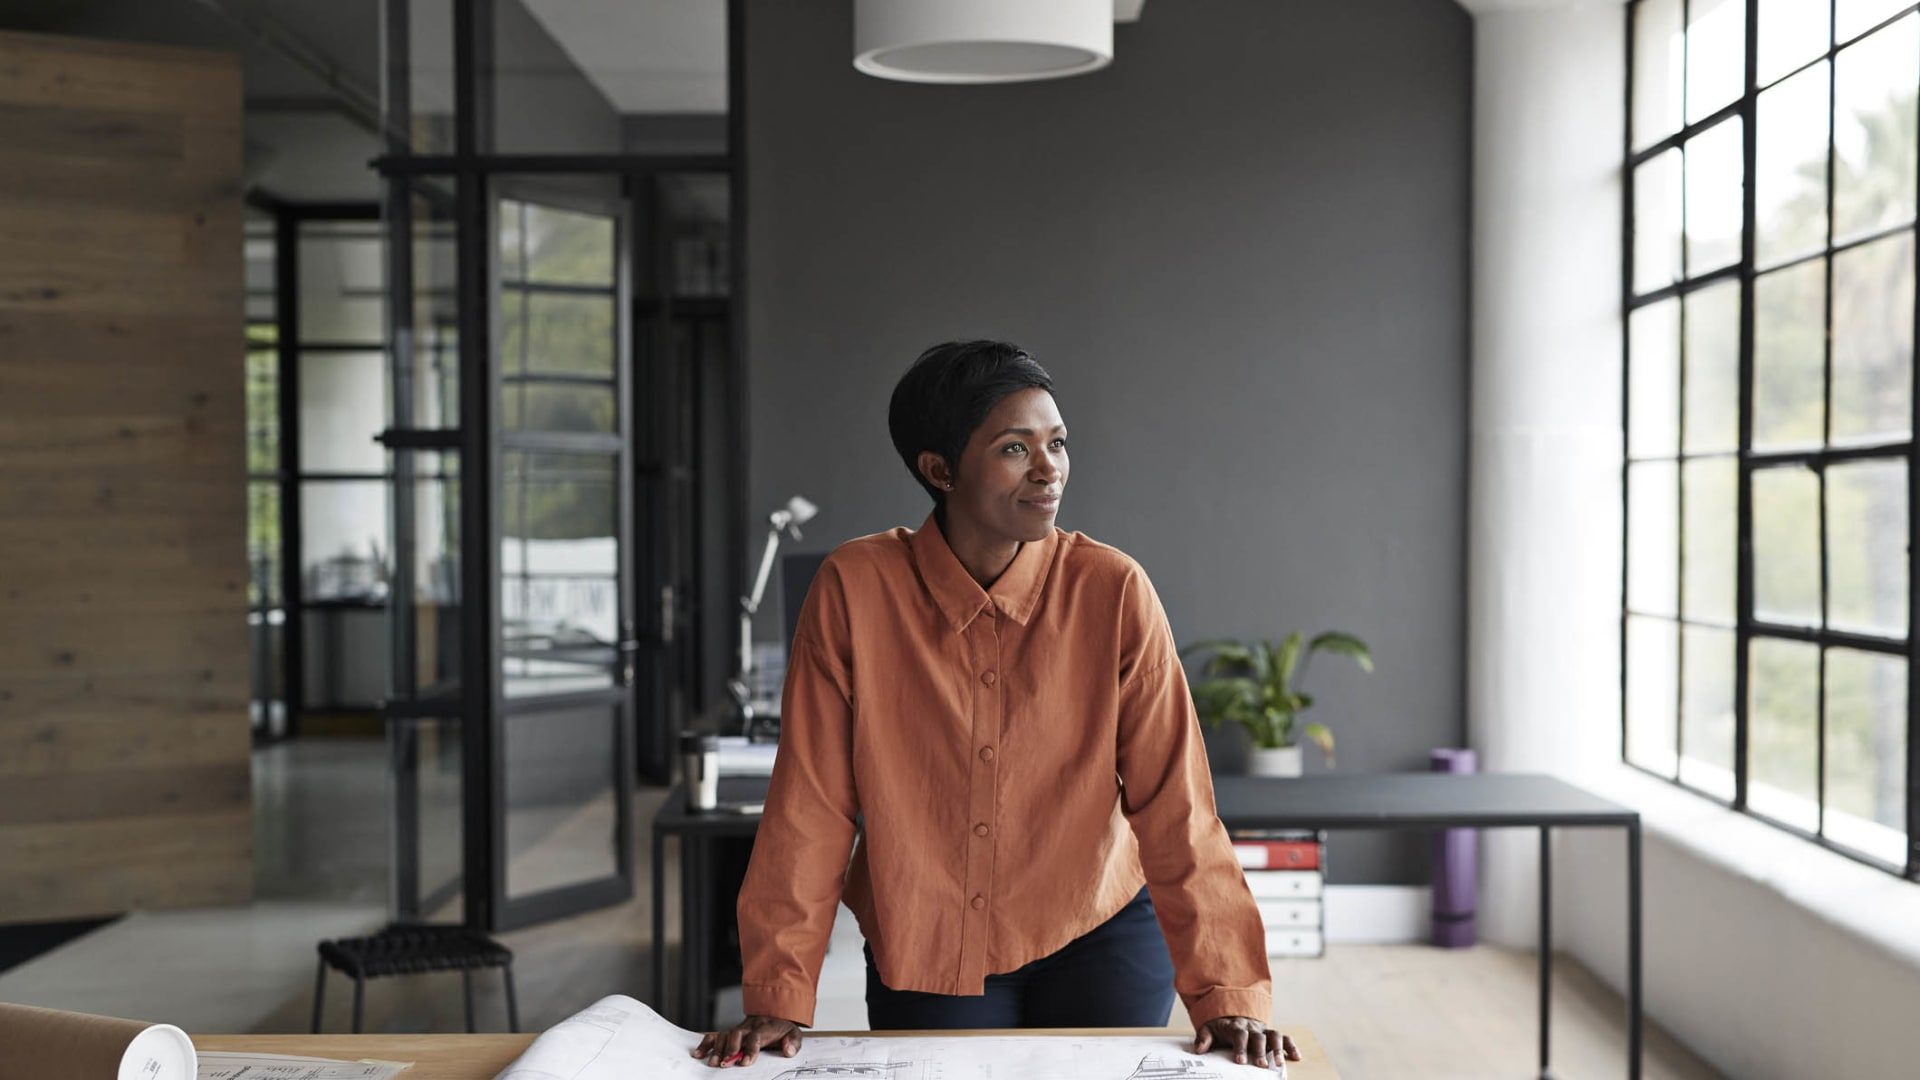 How to Build an Entrepreneurial Mindset